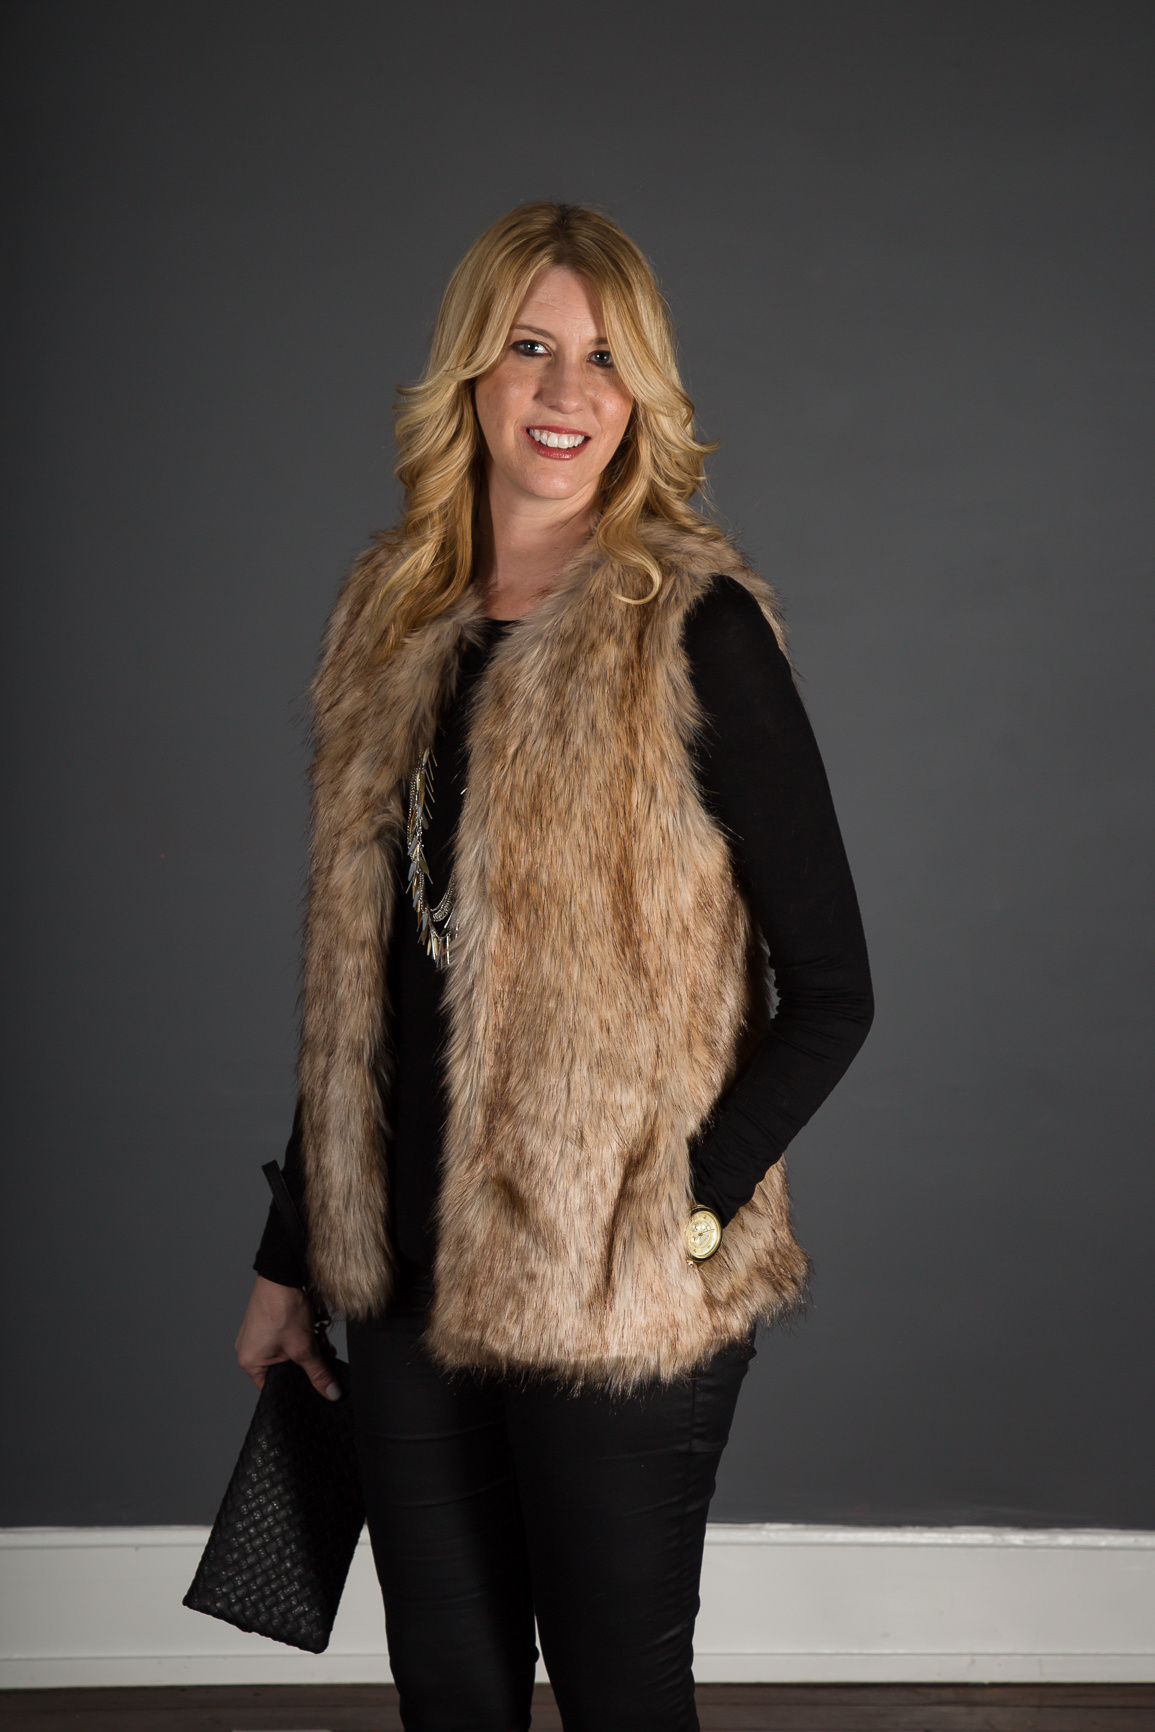 fur vest & coated denim outfit